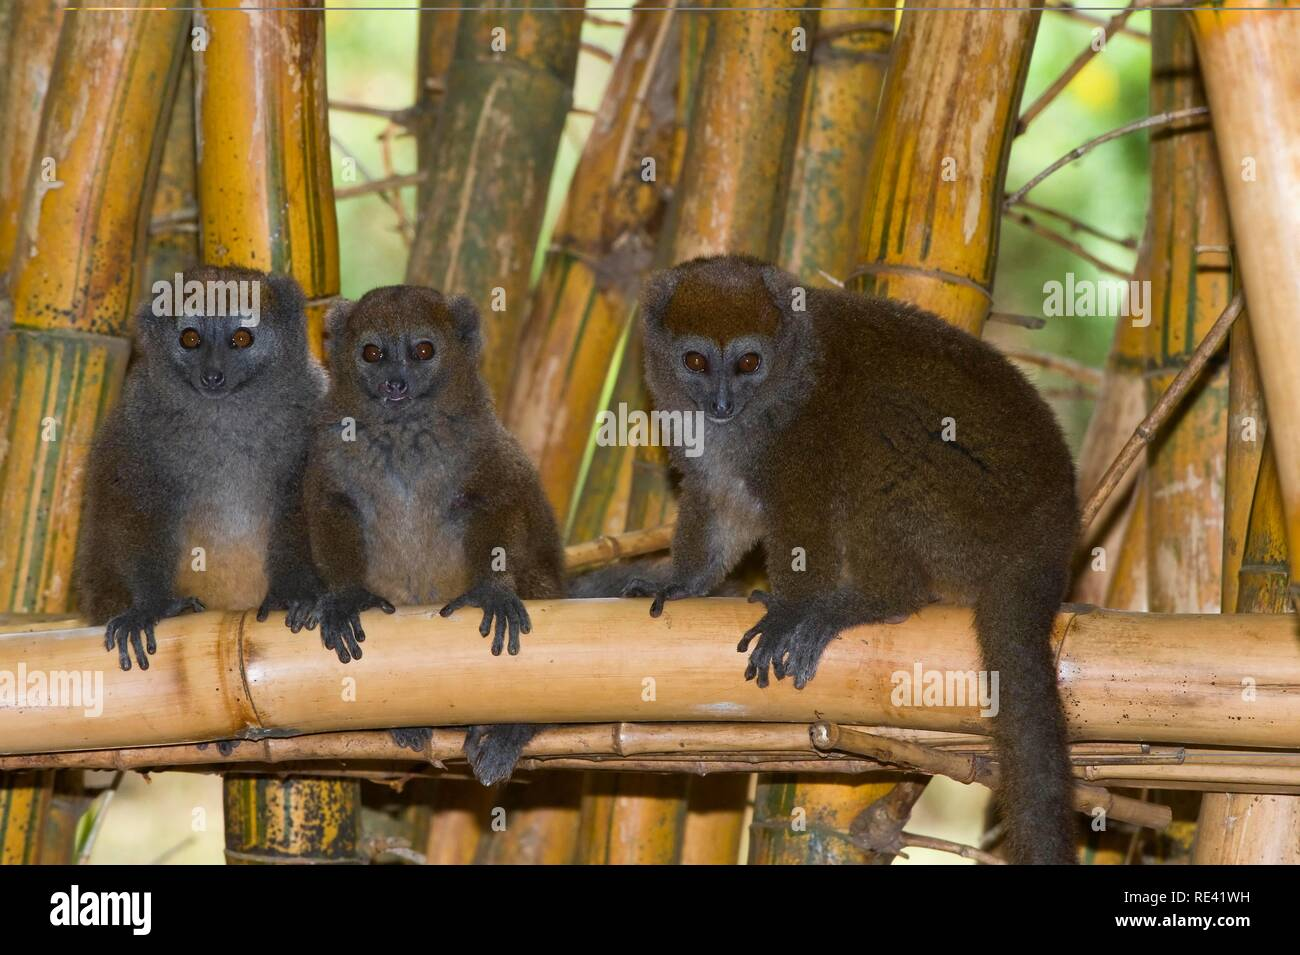 Eastern Lesser Bamboo Lemur also known as Gray Bamboo Lemur or Gray Gentle Lemur (Hapalemur griseus), endemic, Vulnerable - Stock Image